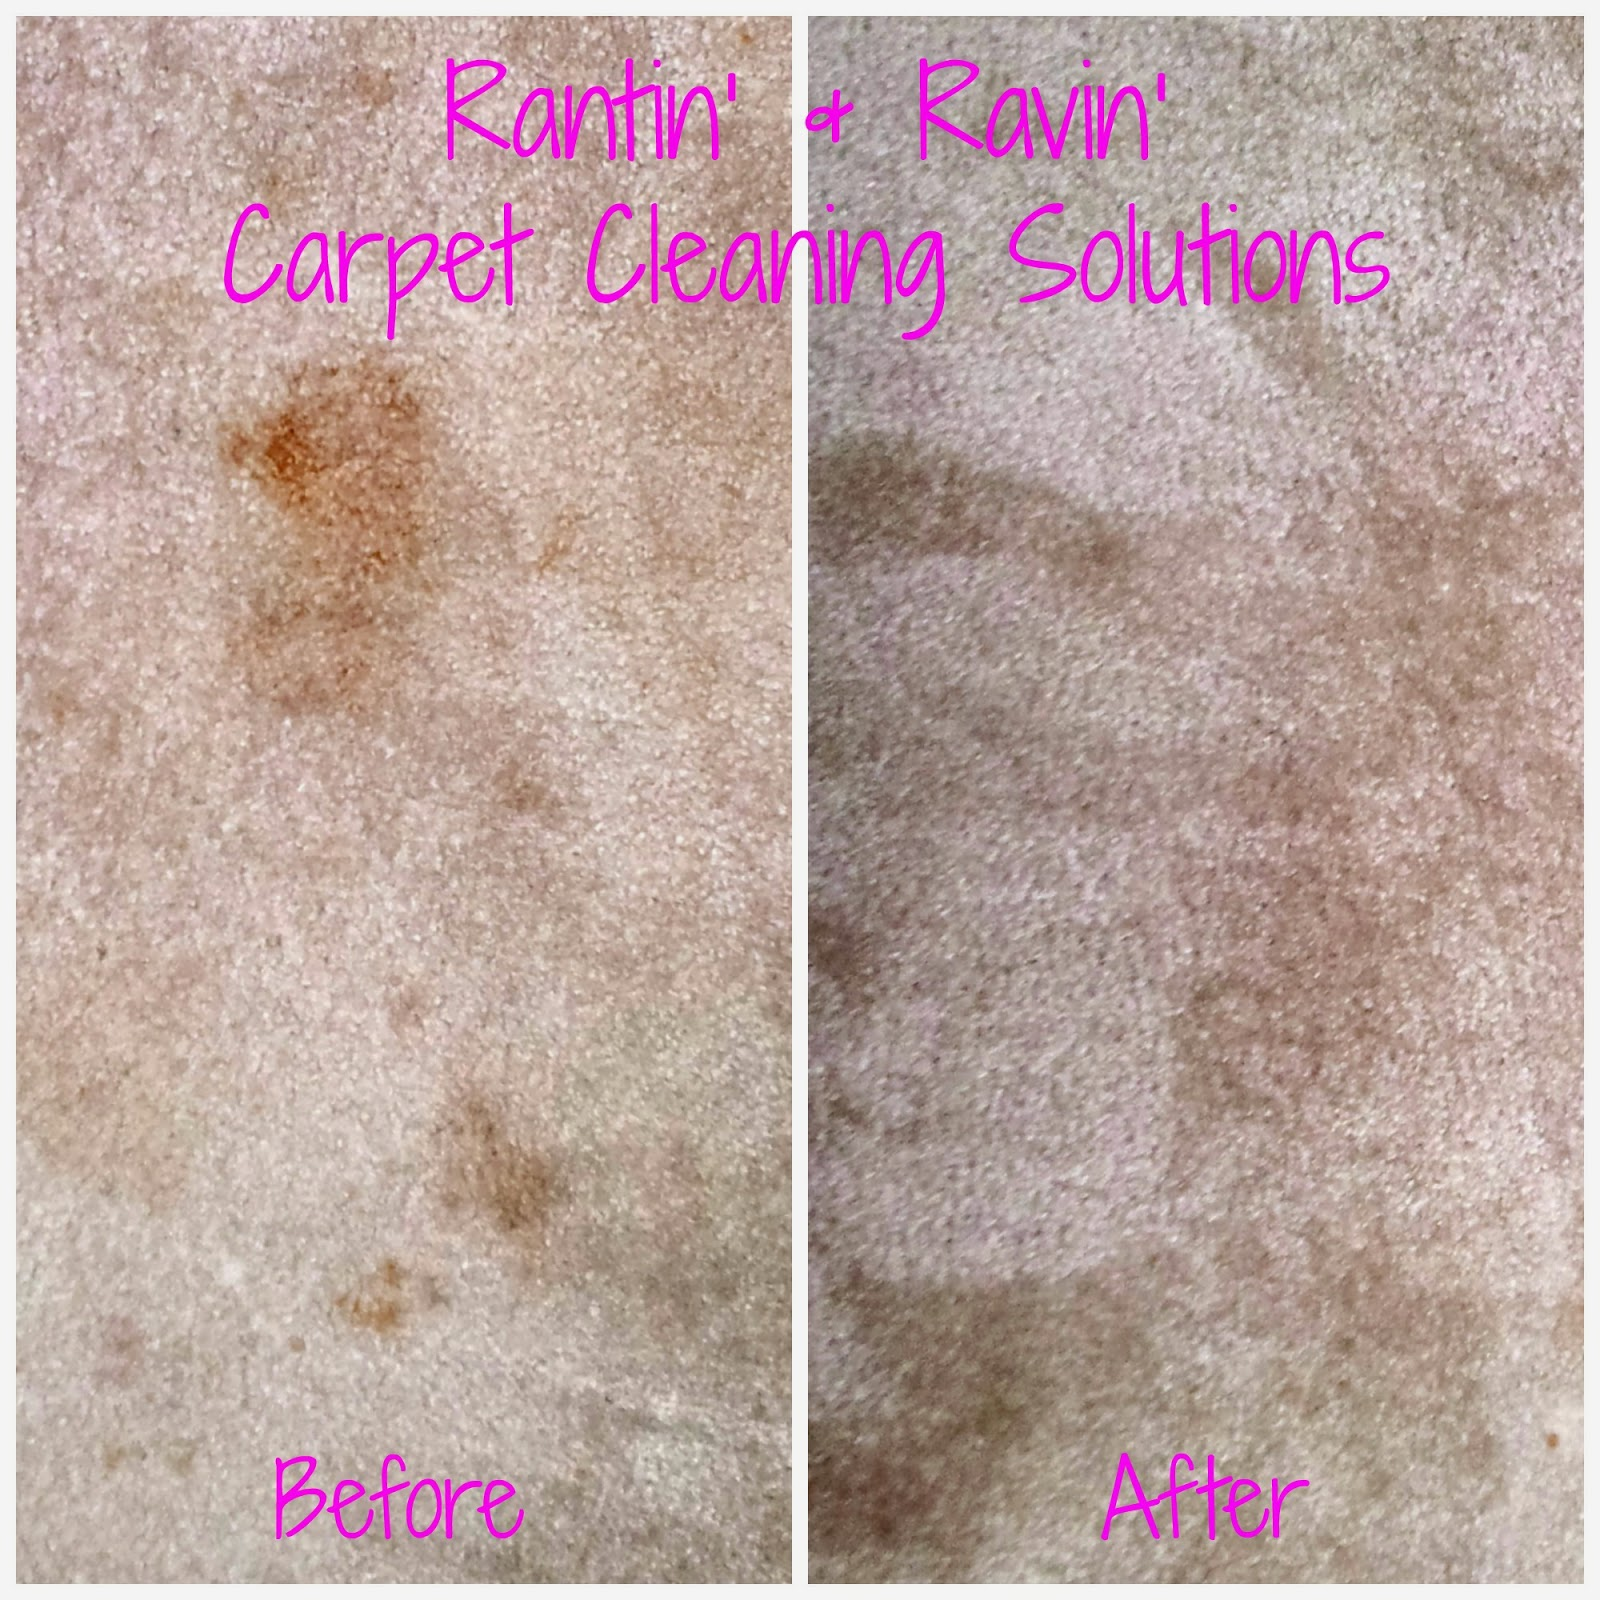 Rantin' & Ravin': CARPET CLEANING!!!